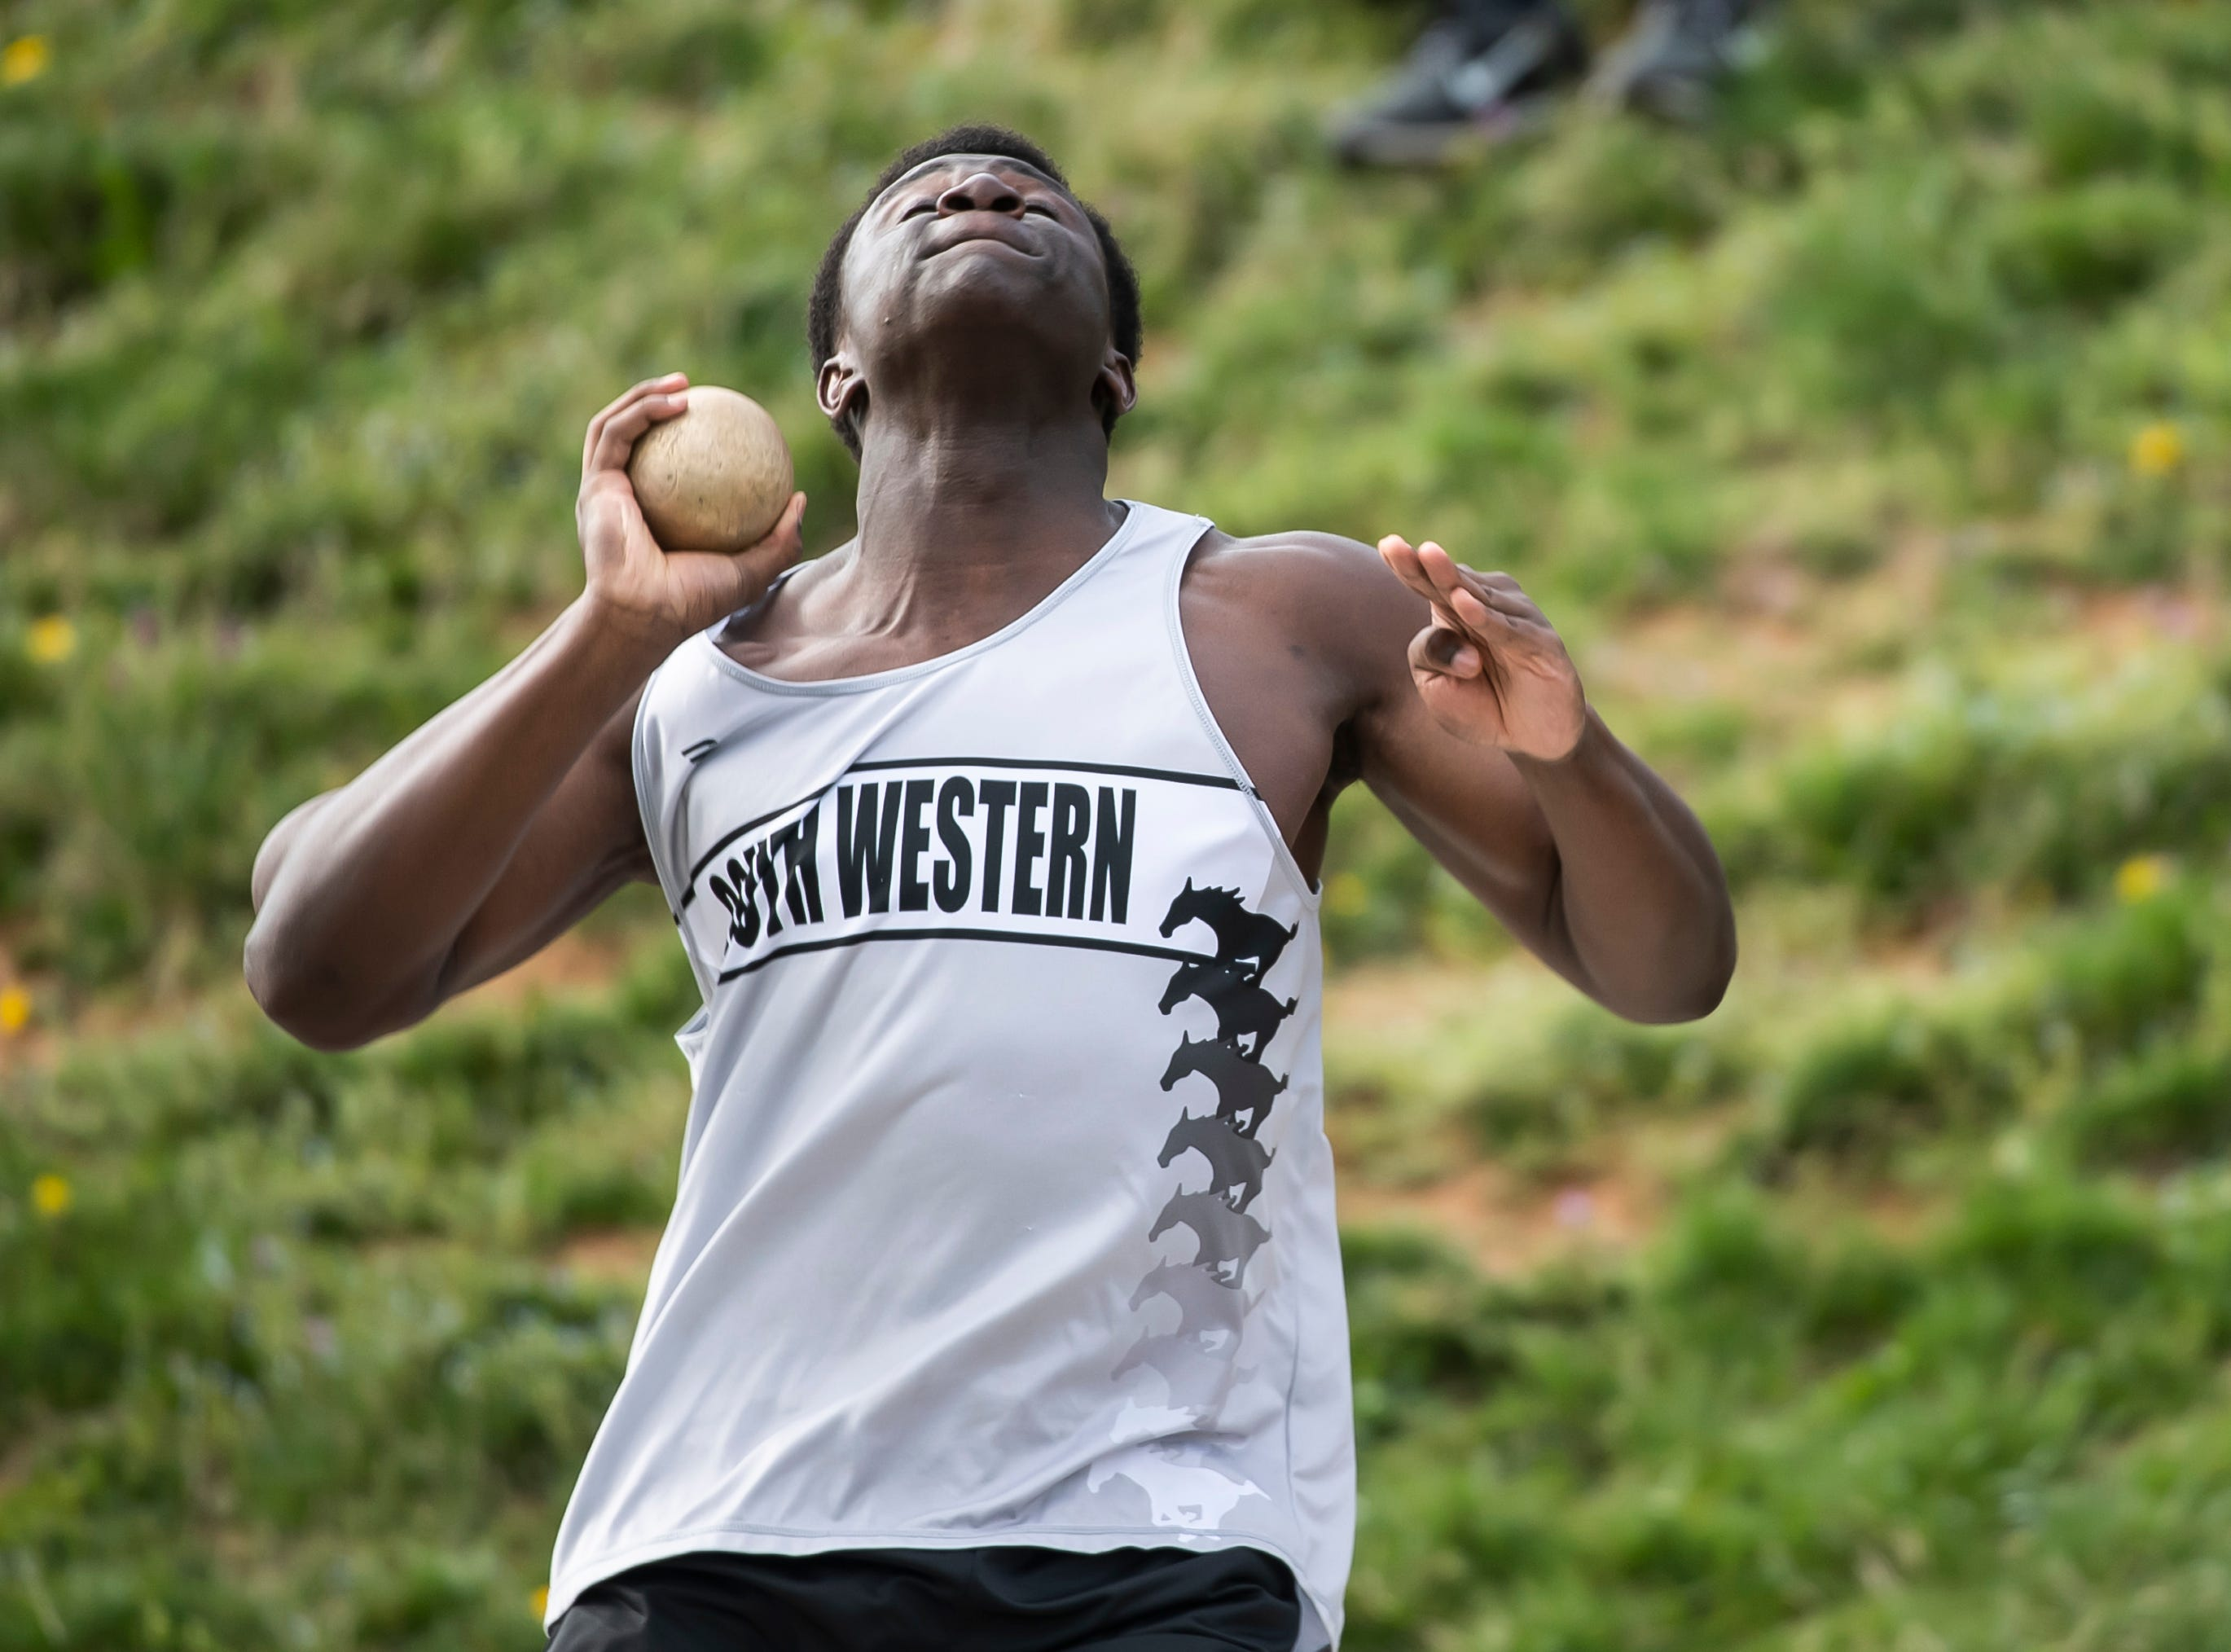 Spring Grove and South Western track and field teams compete on Thursday, April 11, 2019.